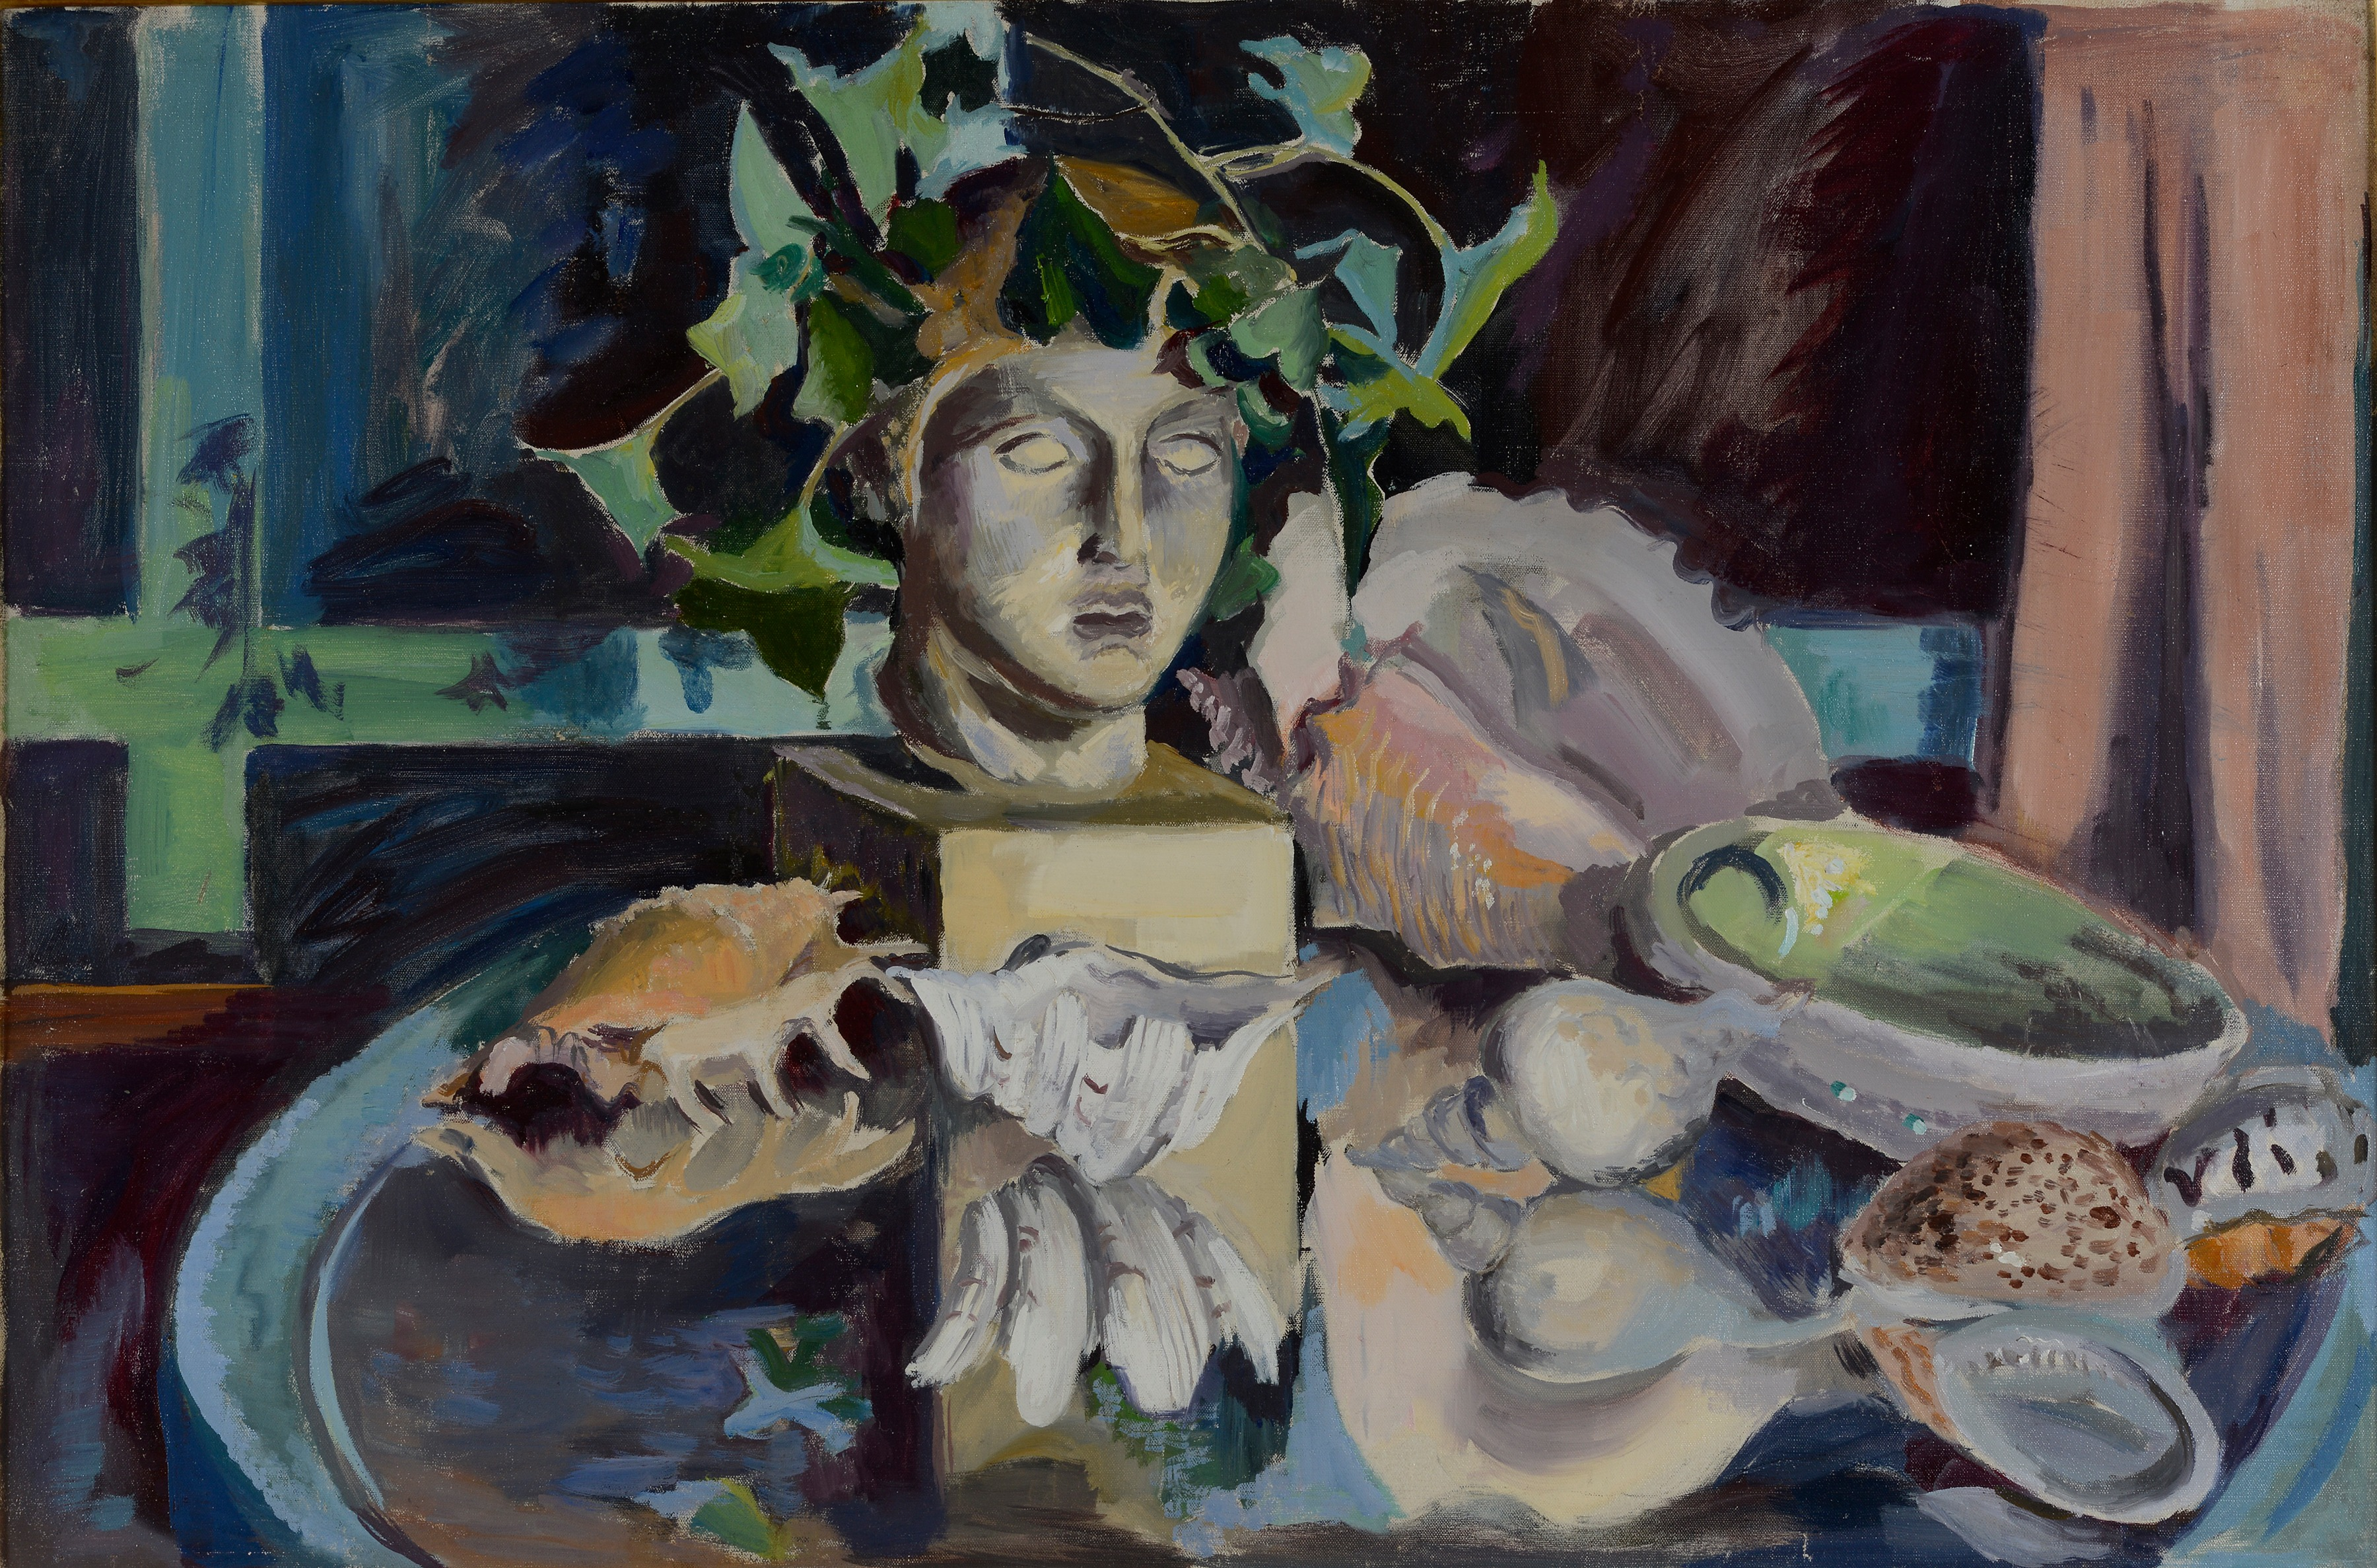 Still Life with Classical Sculpture (Oil on canvas)